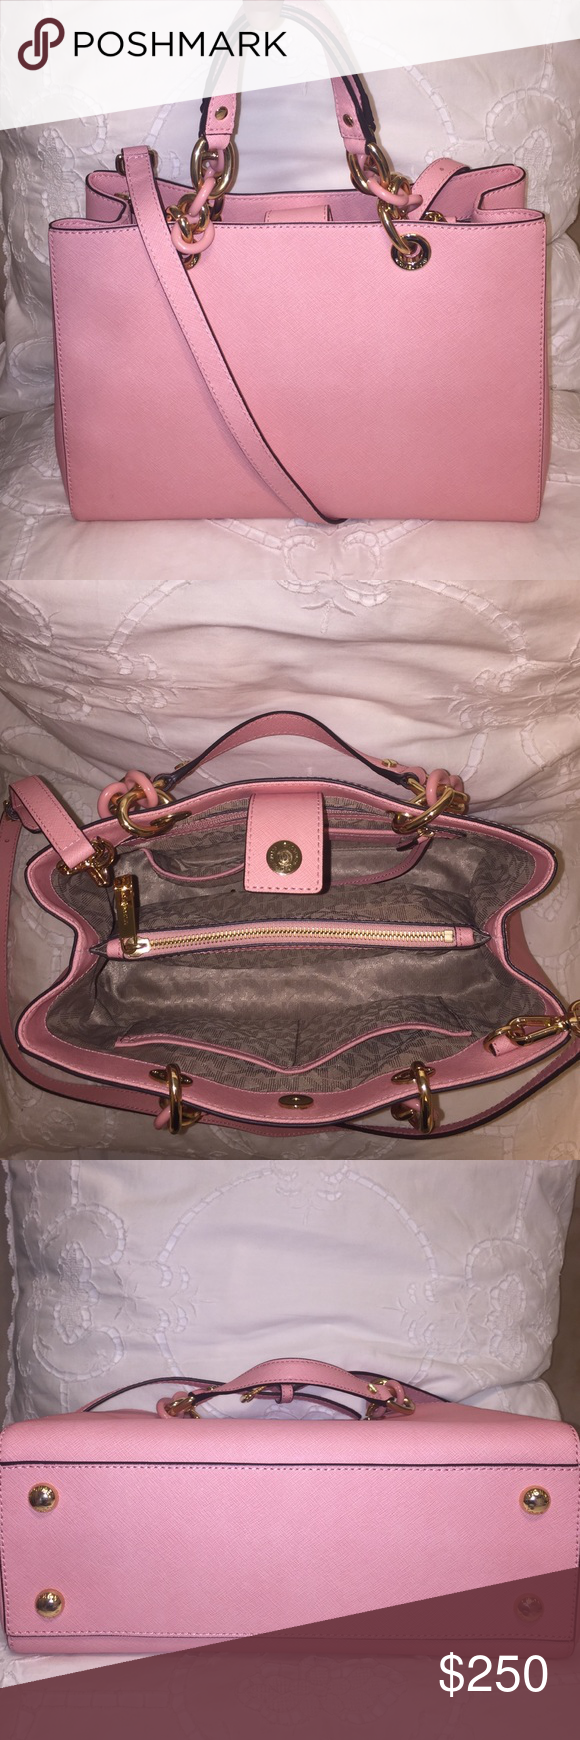 Michael Kors Pale Pink Cynthia Saffiano Leather Pinterest Selma Large Satchel Coklat Medium Size New With Tags And Dust Bag Bags Satchels